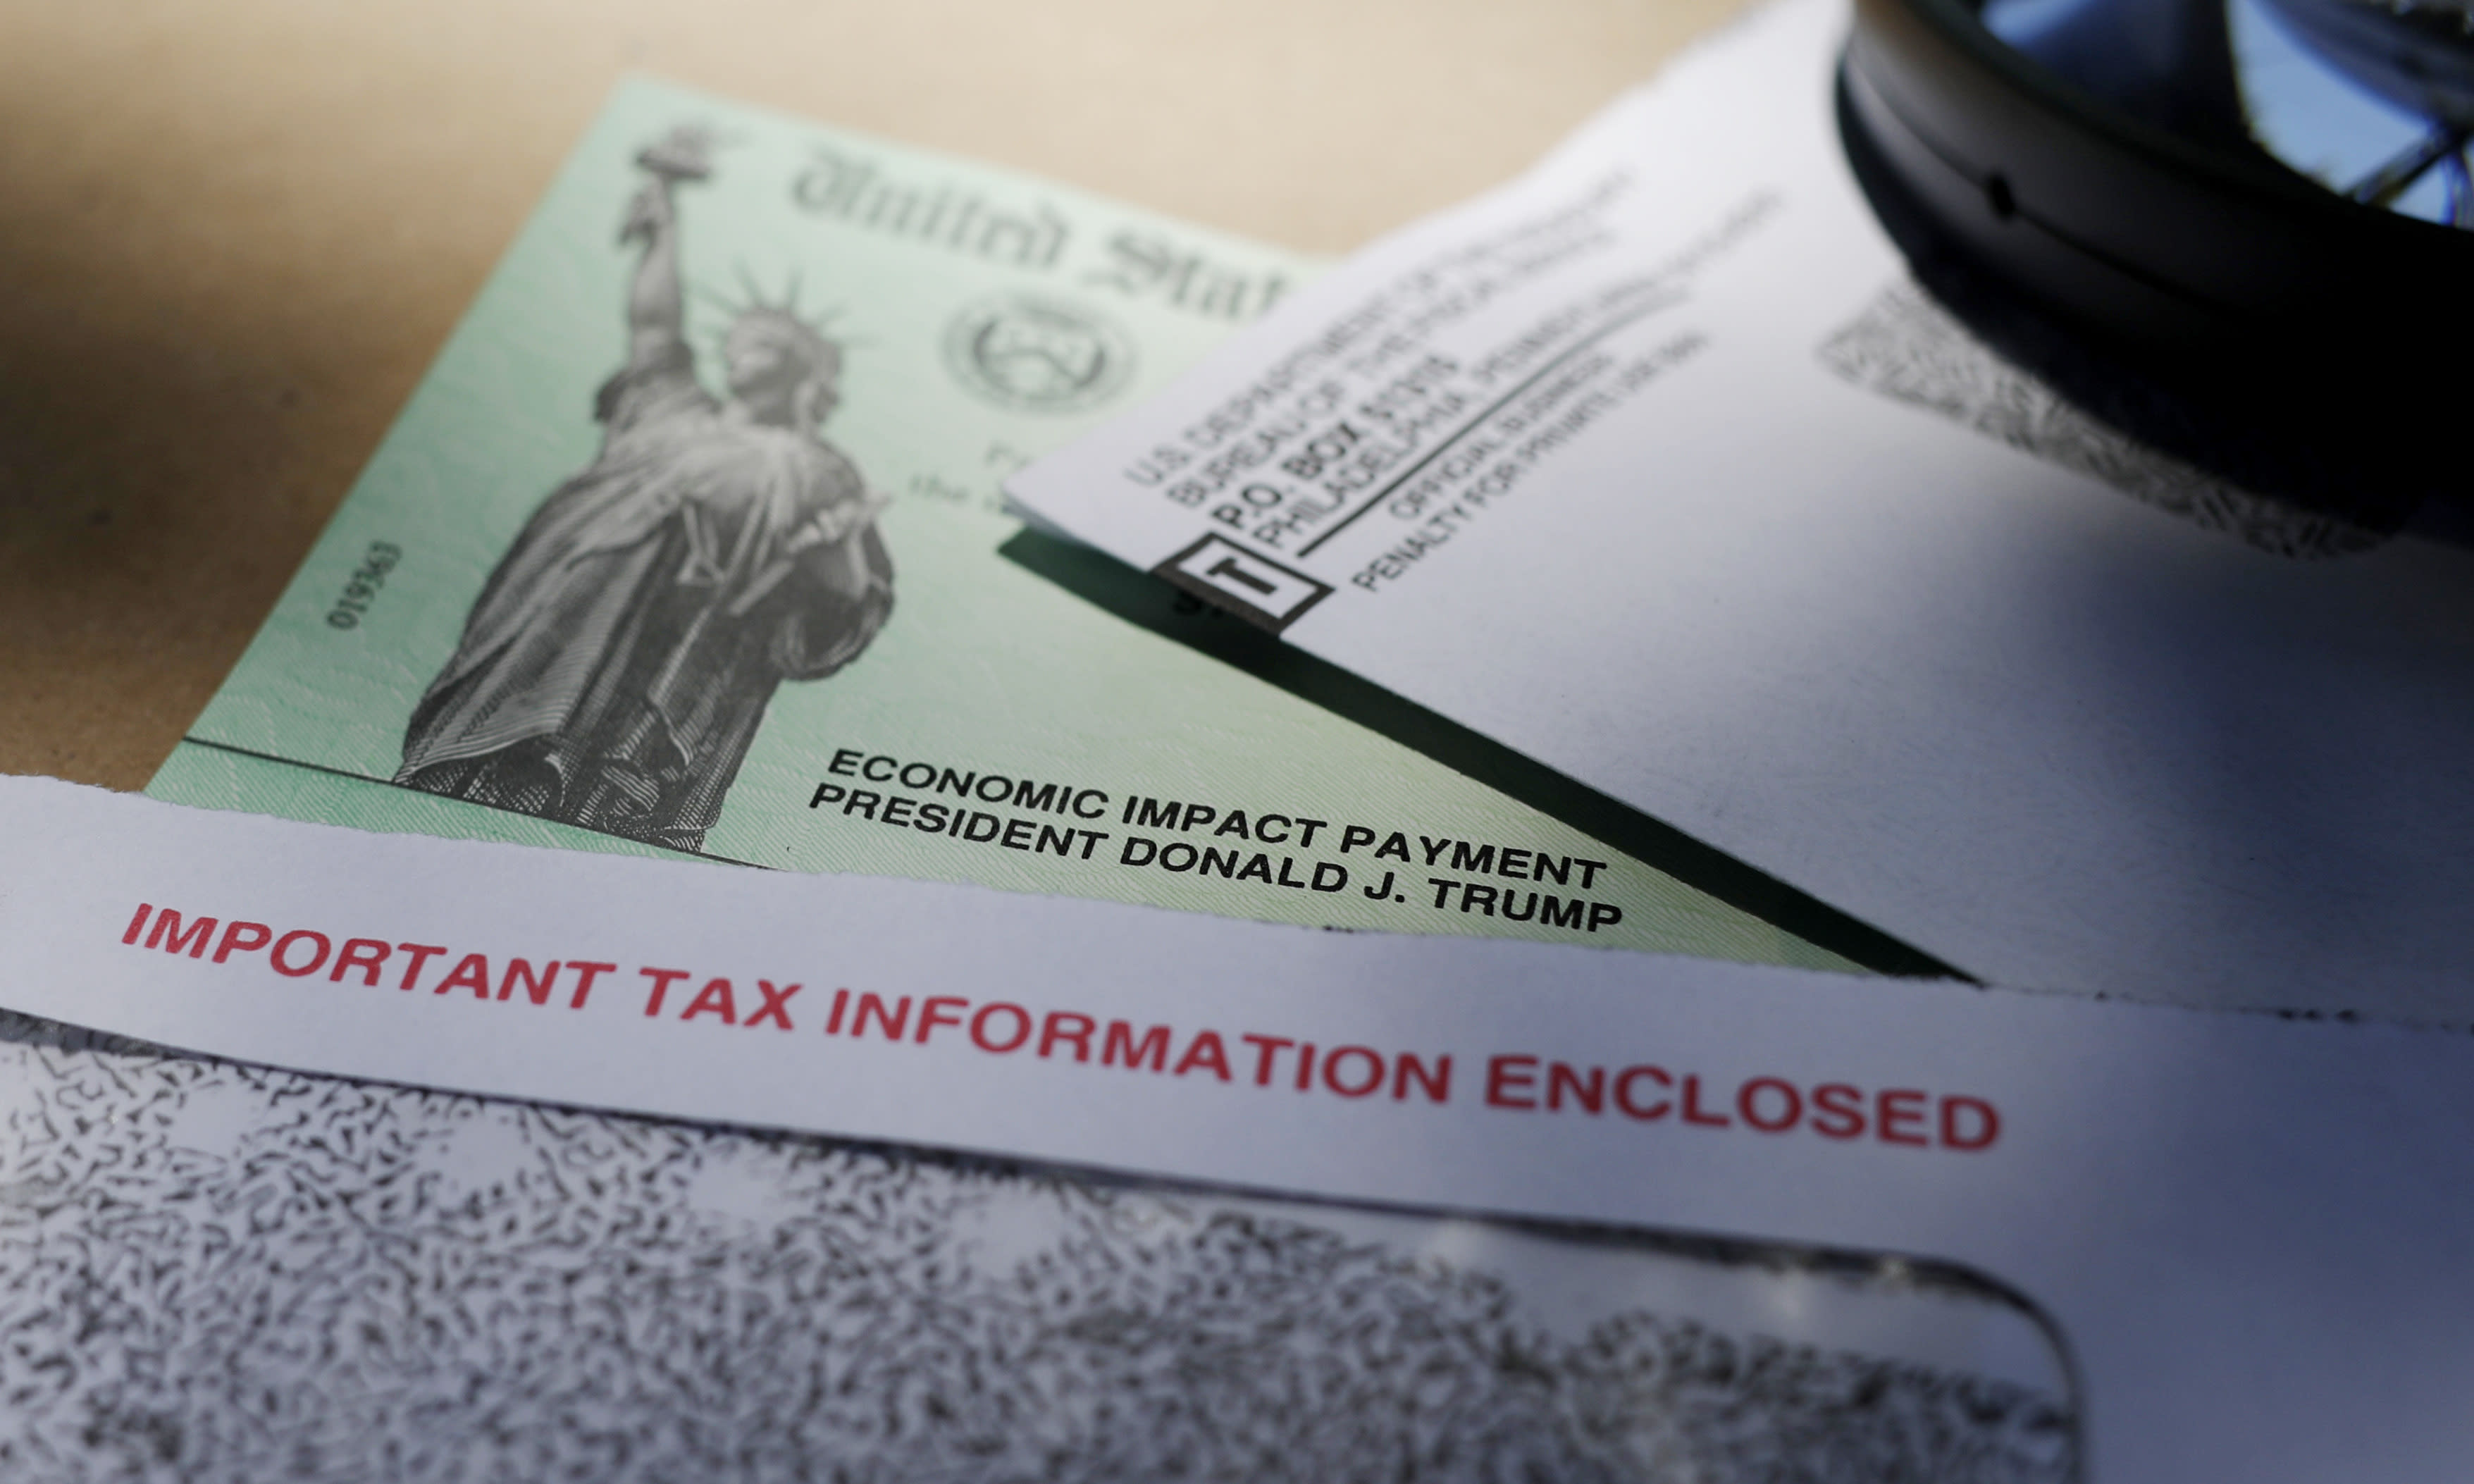 FILE - In this April 23, 2020, file photo, President Donald Trump's name is seen on a stimulus check issued by the IRS to help combat the adverse economic effects of the COVID-19 outbreak, in San Antonio. Hundreds of thousands of dollars in coronavirus relief payments have been sent to people behind bars across the United States, and now the IRS is asking state officials to help claw back the cash that the federal tax agency says was mistakenly sent. (AP Photo/Eric Gay, File)